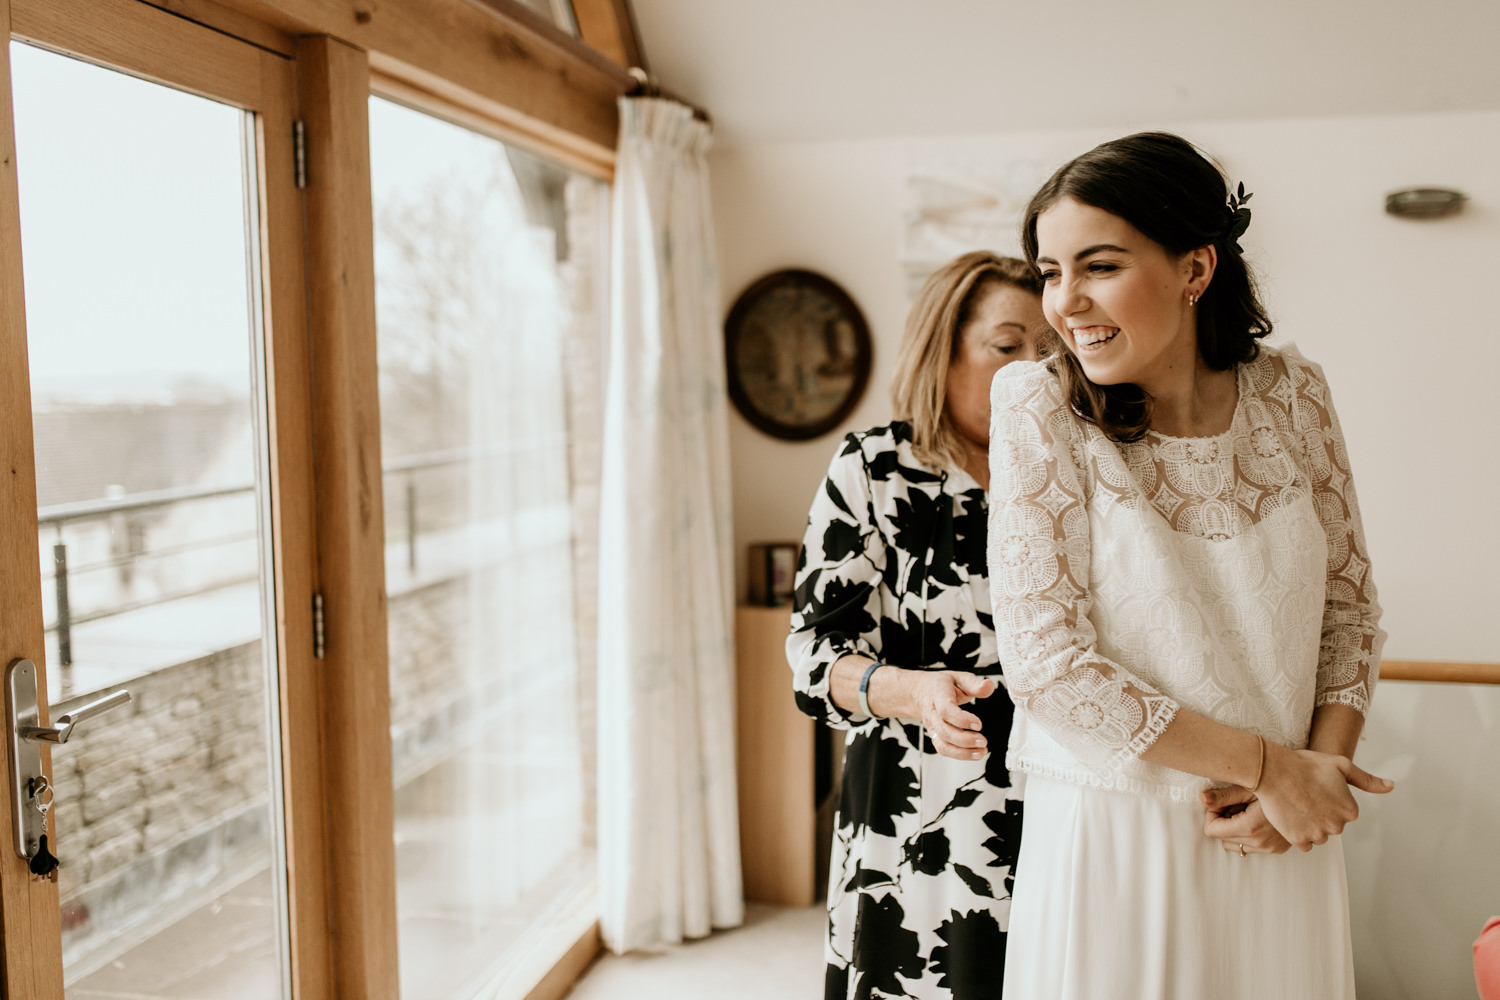 bride getting ready in the morning with mom helping put on her dress, for her Stroud wedding Cotswolds